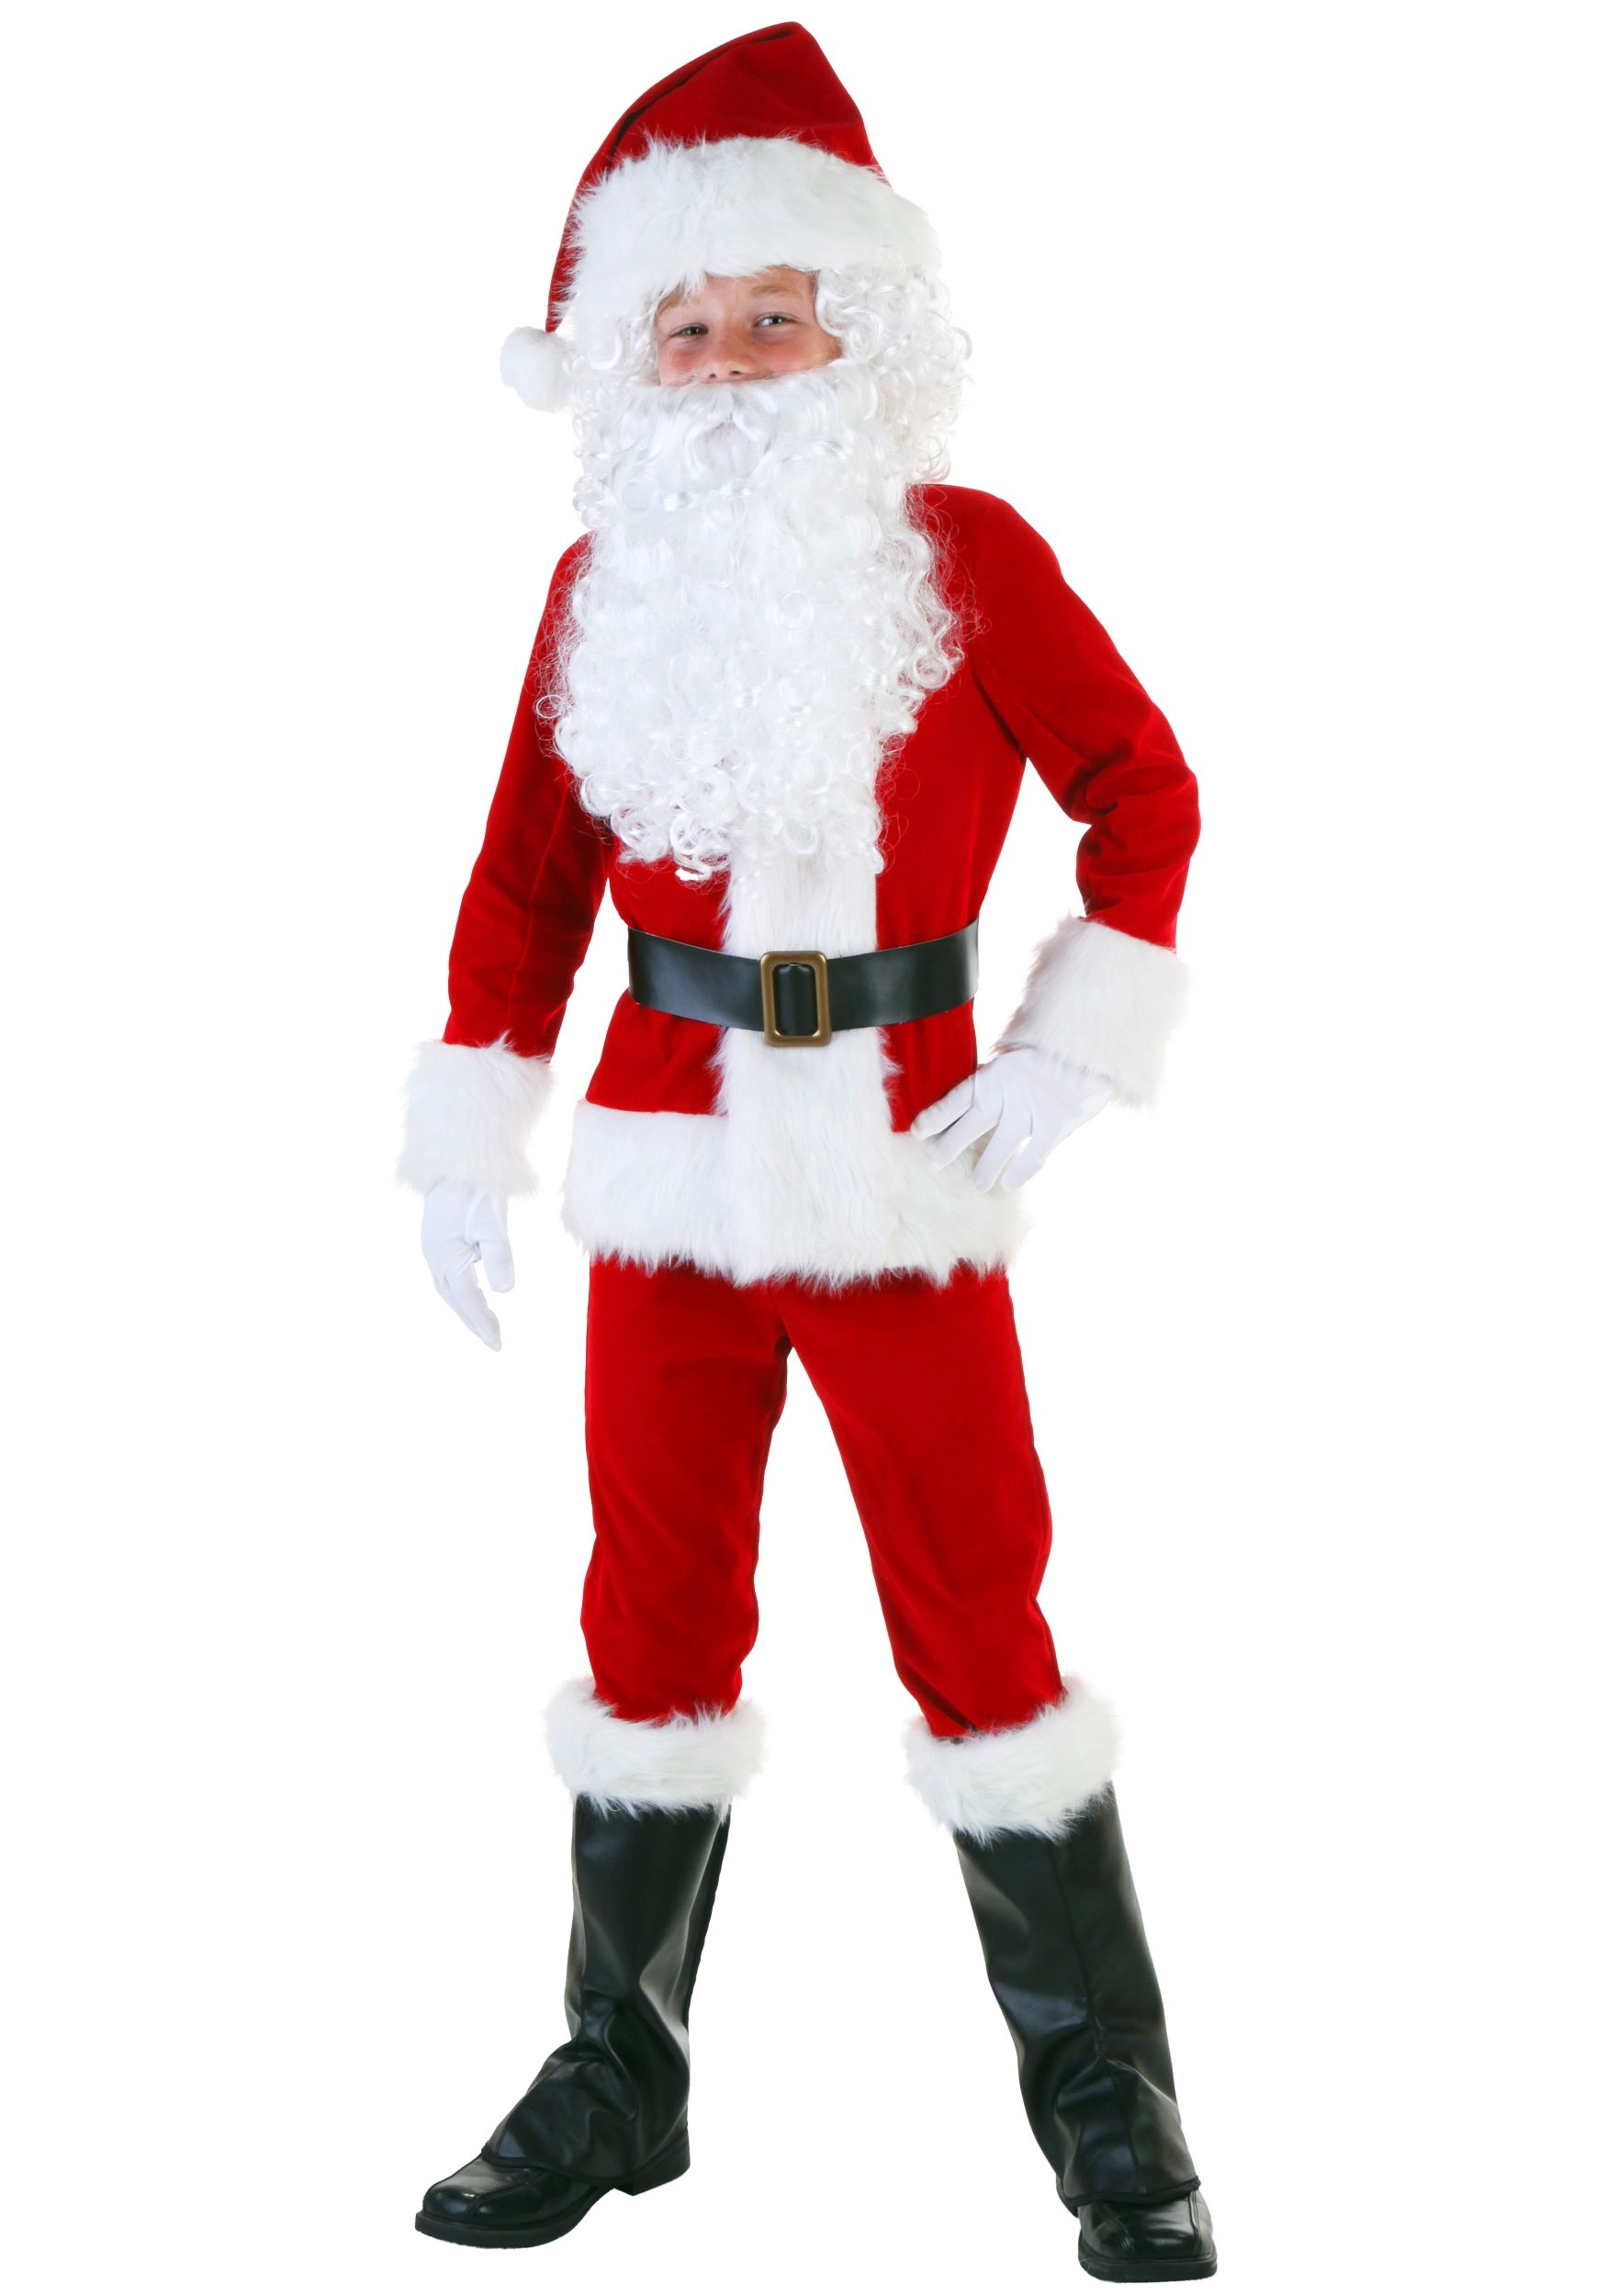 Smiffys Girls Santa Dress Kids Mrs Claus Christmas Costume Fancy Dress Outfit. Sold by 7th Avenue Store. $ $ IDS Christmas Girls Santa Claus Dress Red Adult Lovely Father Christmas Dress New. Sold by IDS. $ $ Fun World Costumes Little Miss Santa 4-Piece Girl's Christmas Costume Size 24 Months - 2T #